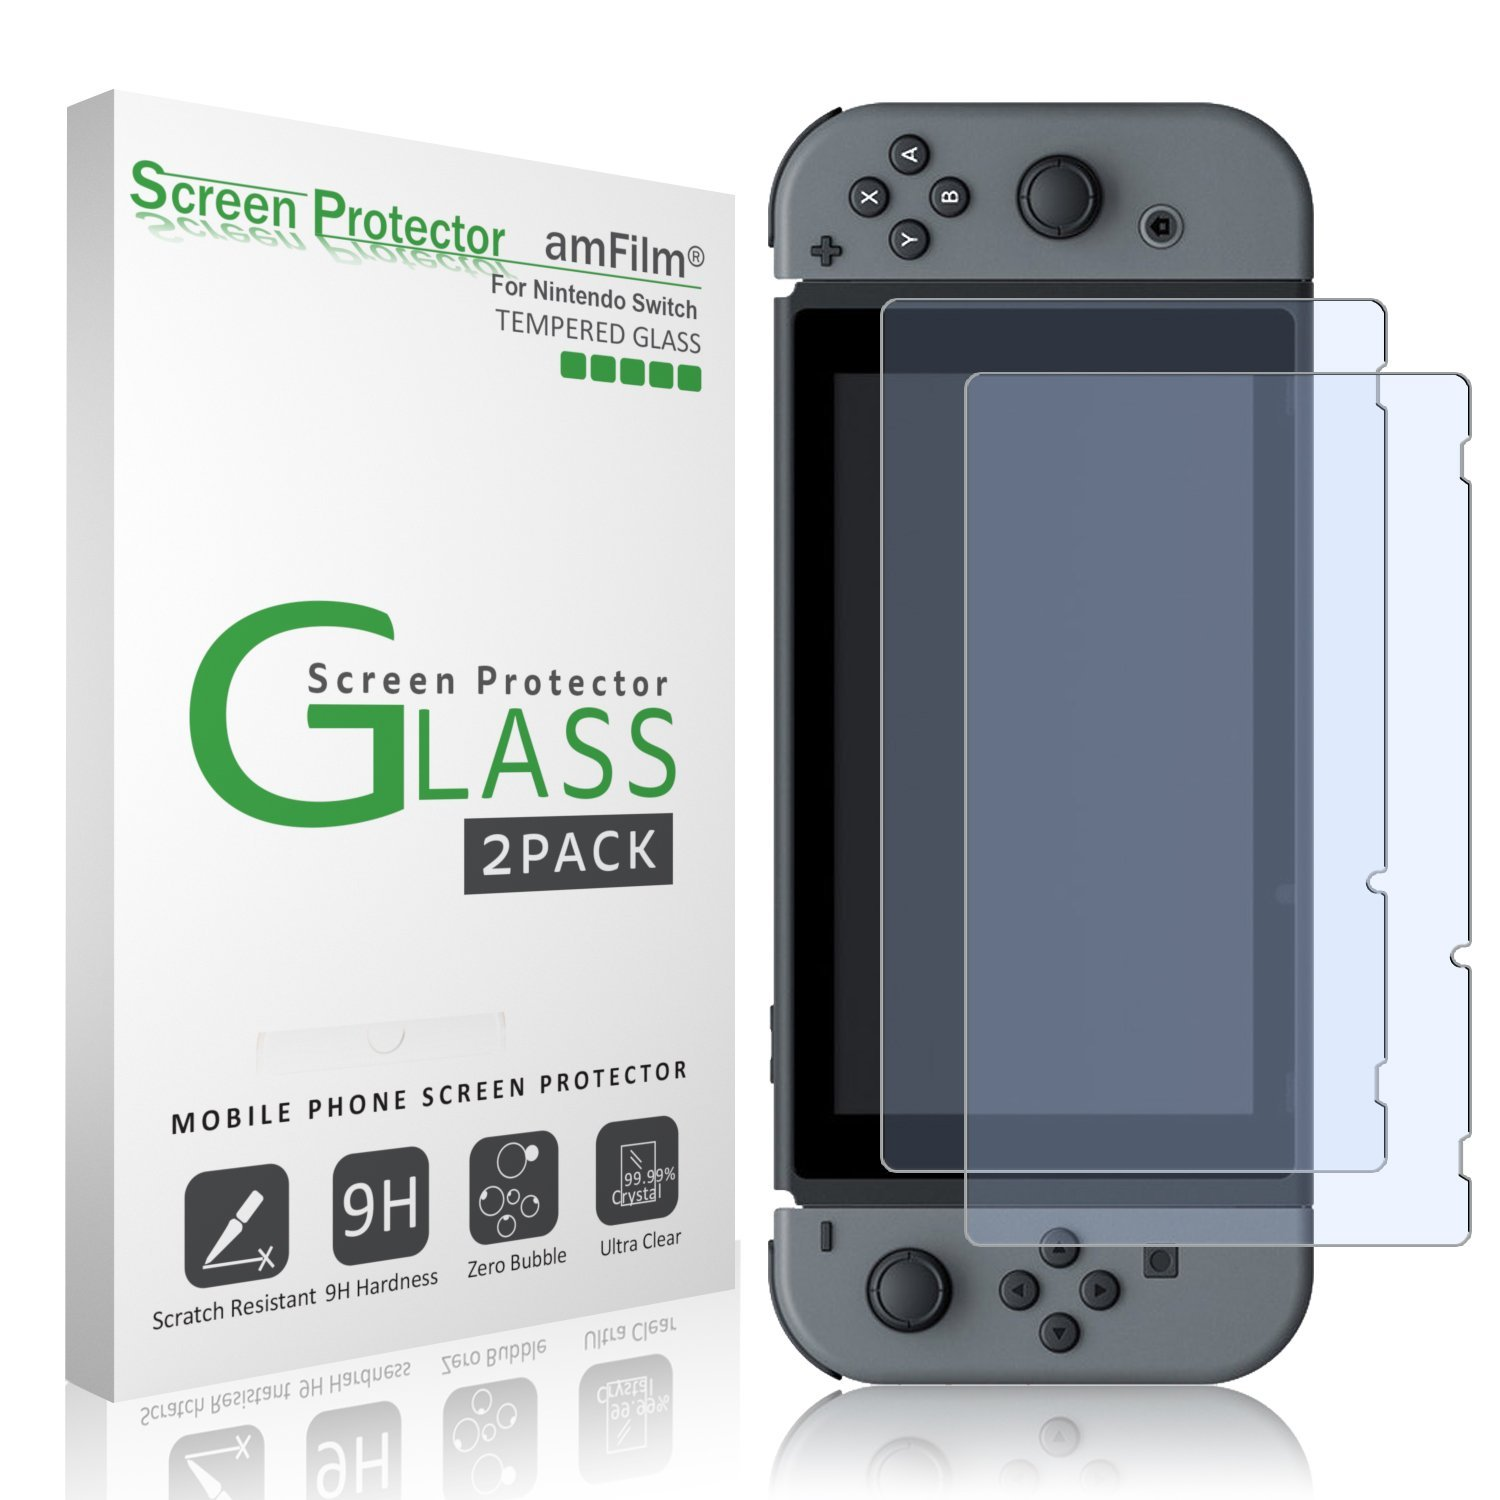 Nintendo Switch Screen Protector Glass (2-Pack), amFilm Nintendo Switch Tempered Glass Screen Protector for Nintendo Switch 2017